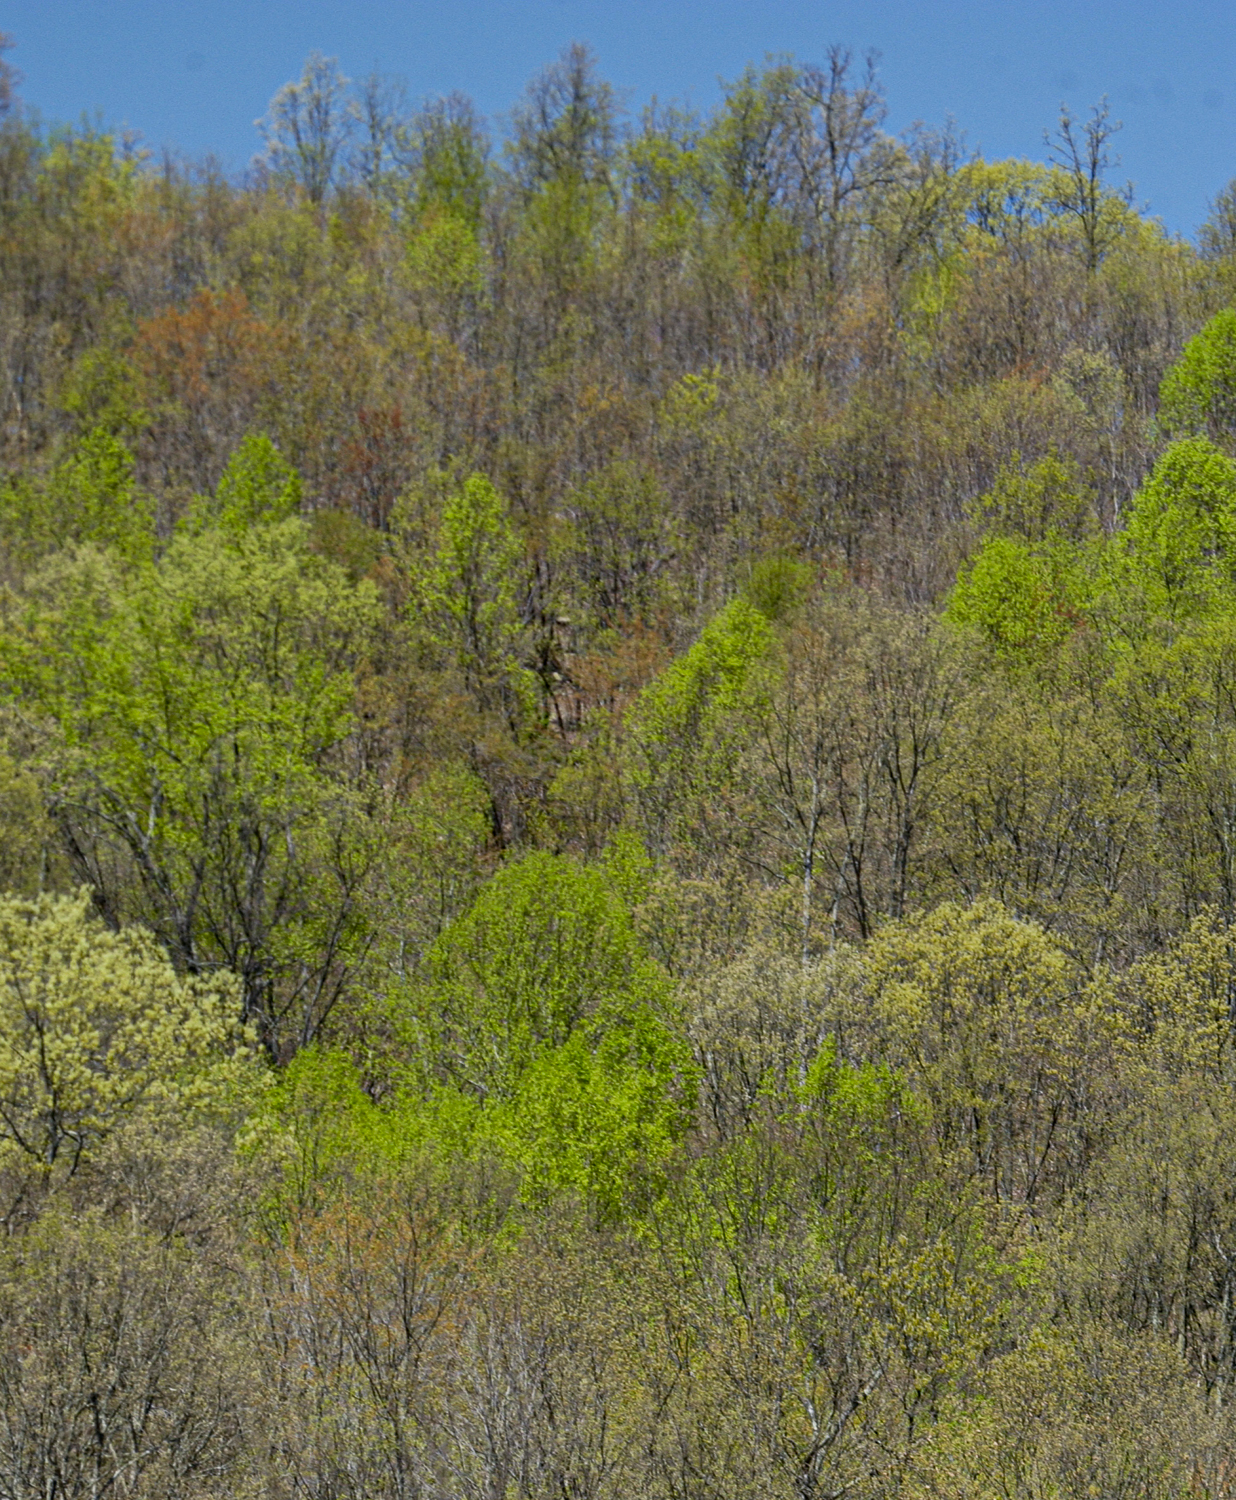 A picture of Kentucky forests in early spring